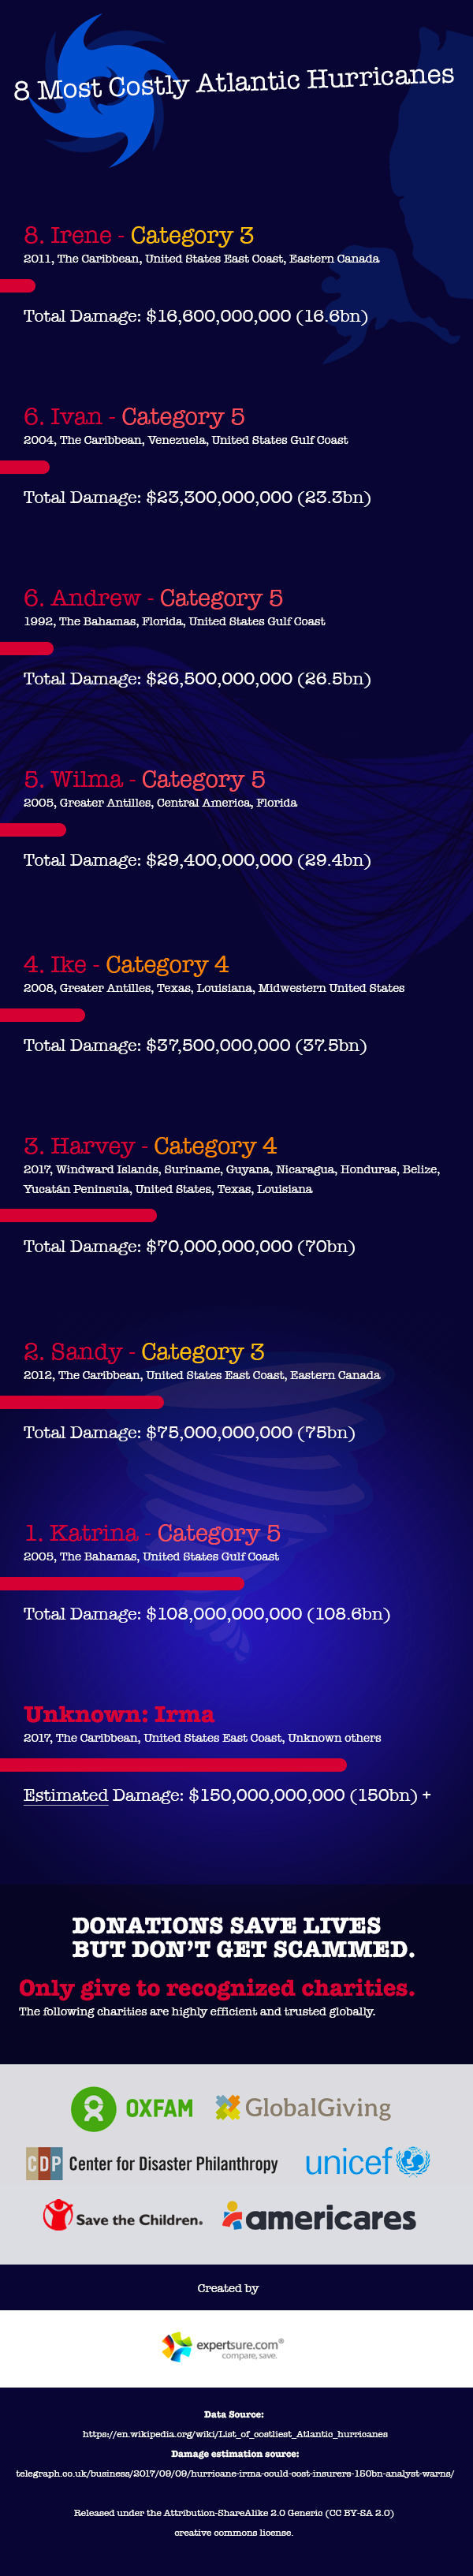 8 Most Costly Atlantic Hurricanes